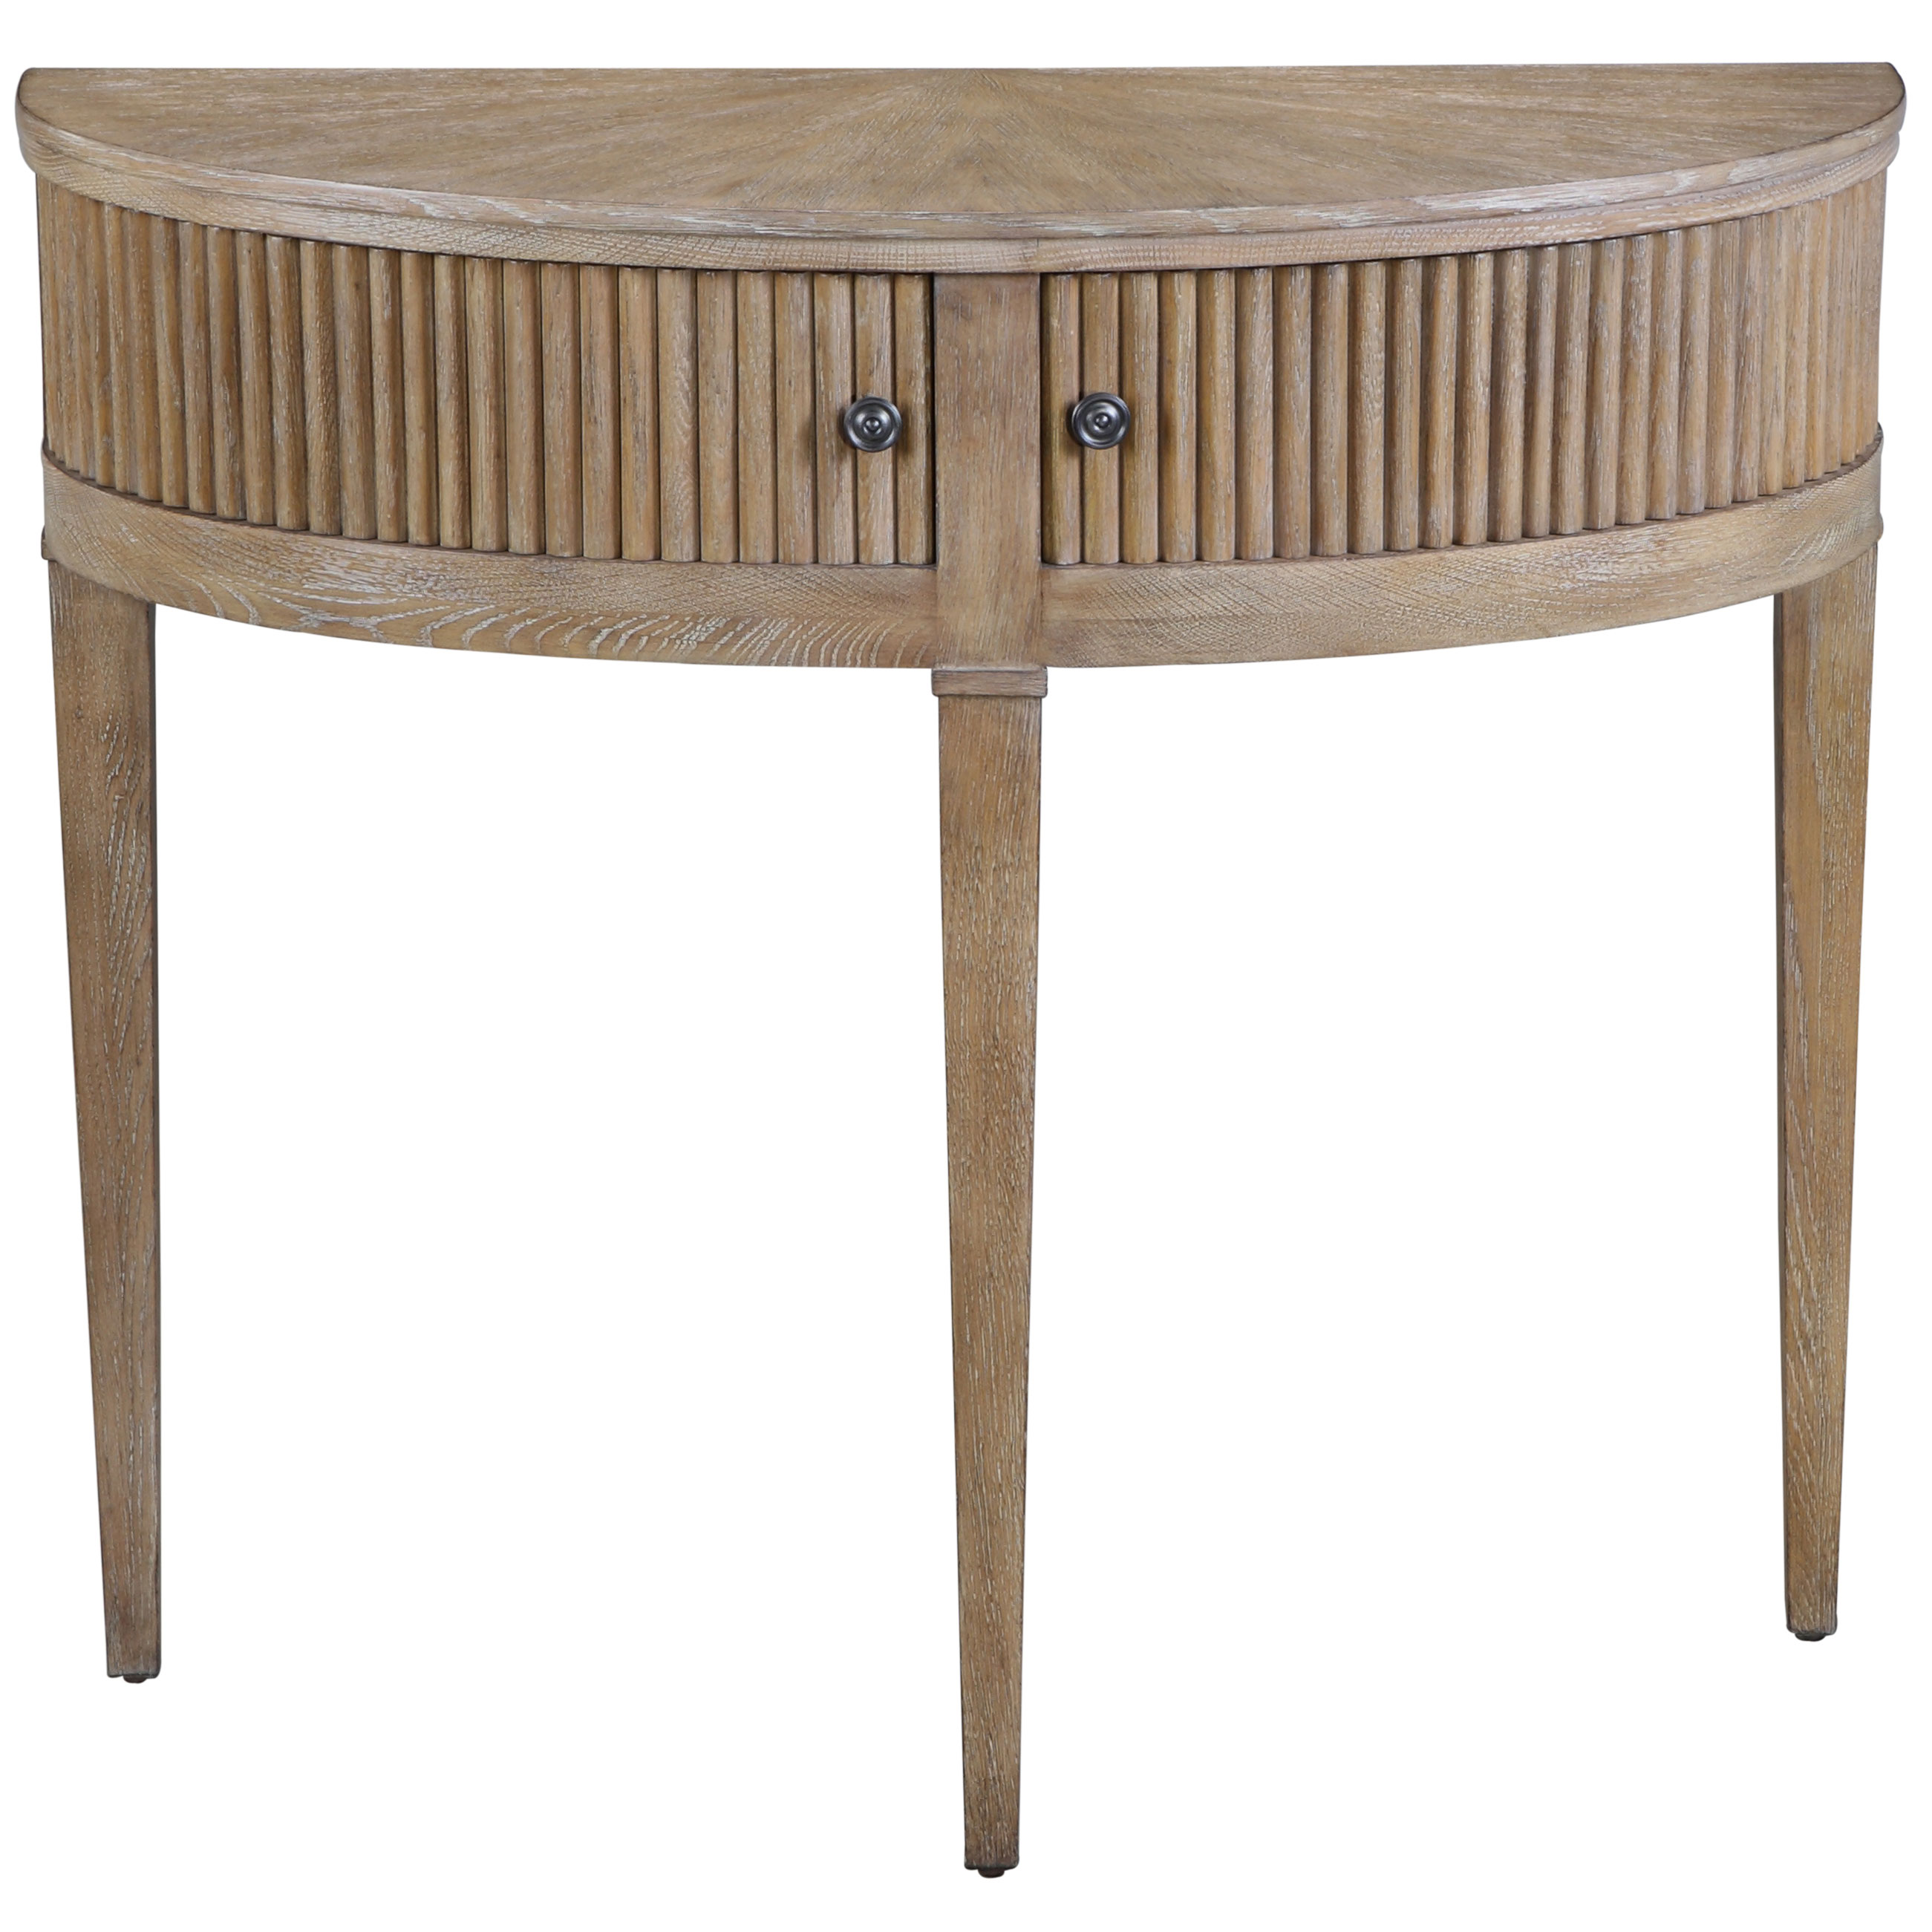 Designer Console Tables - Eclectic Console Tables | Kathy Kuo Home